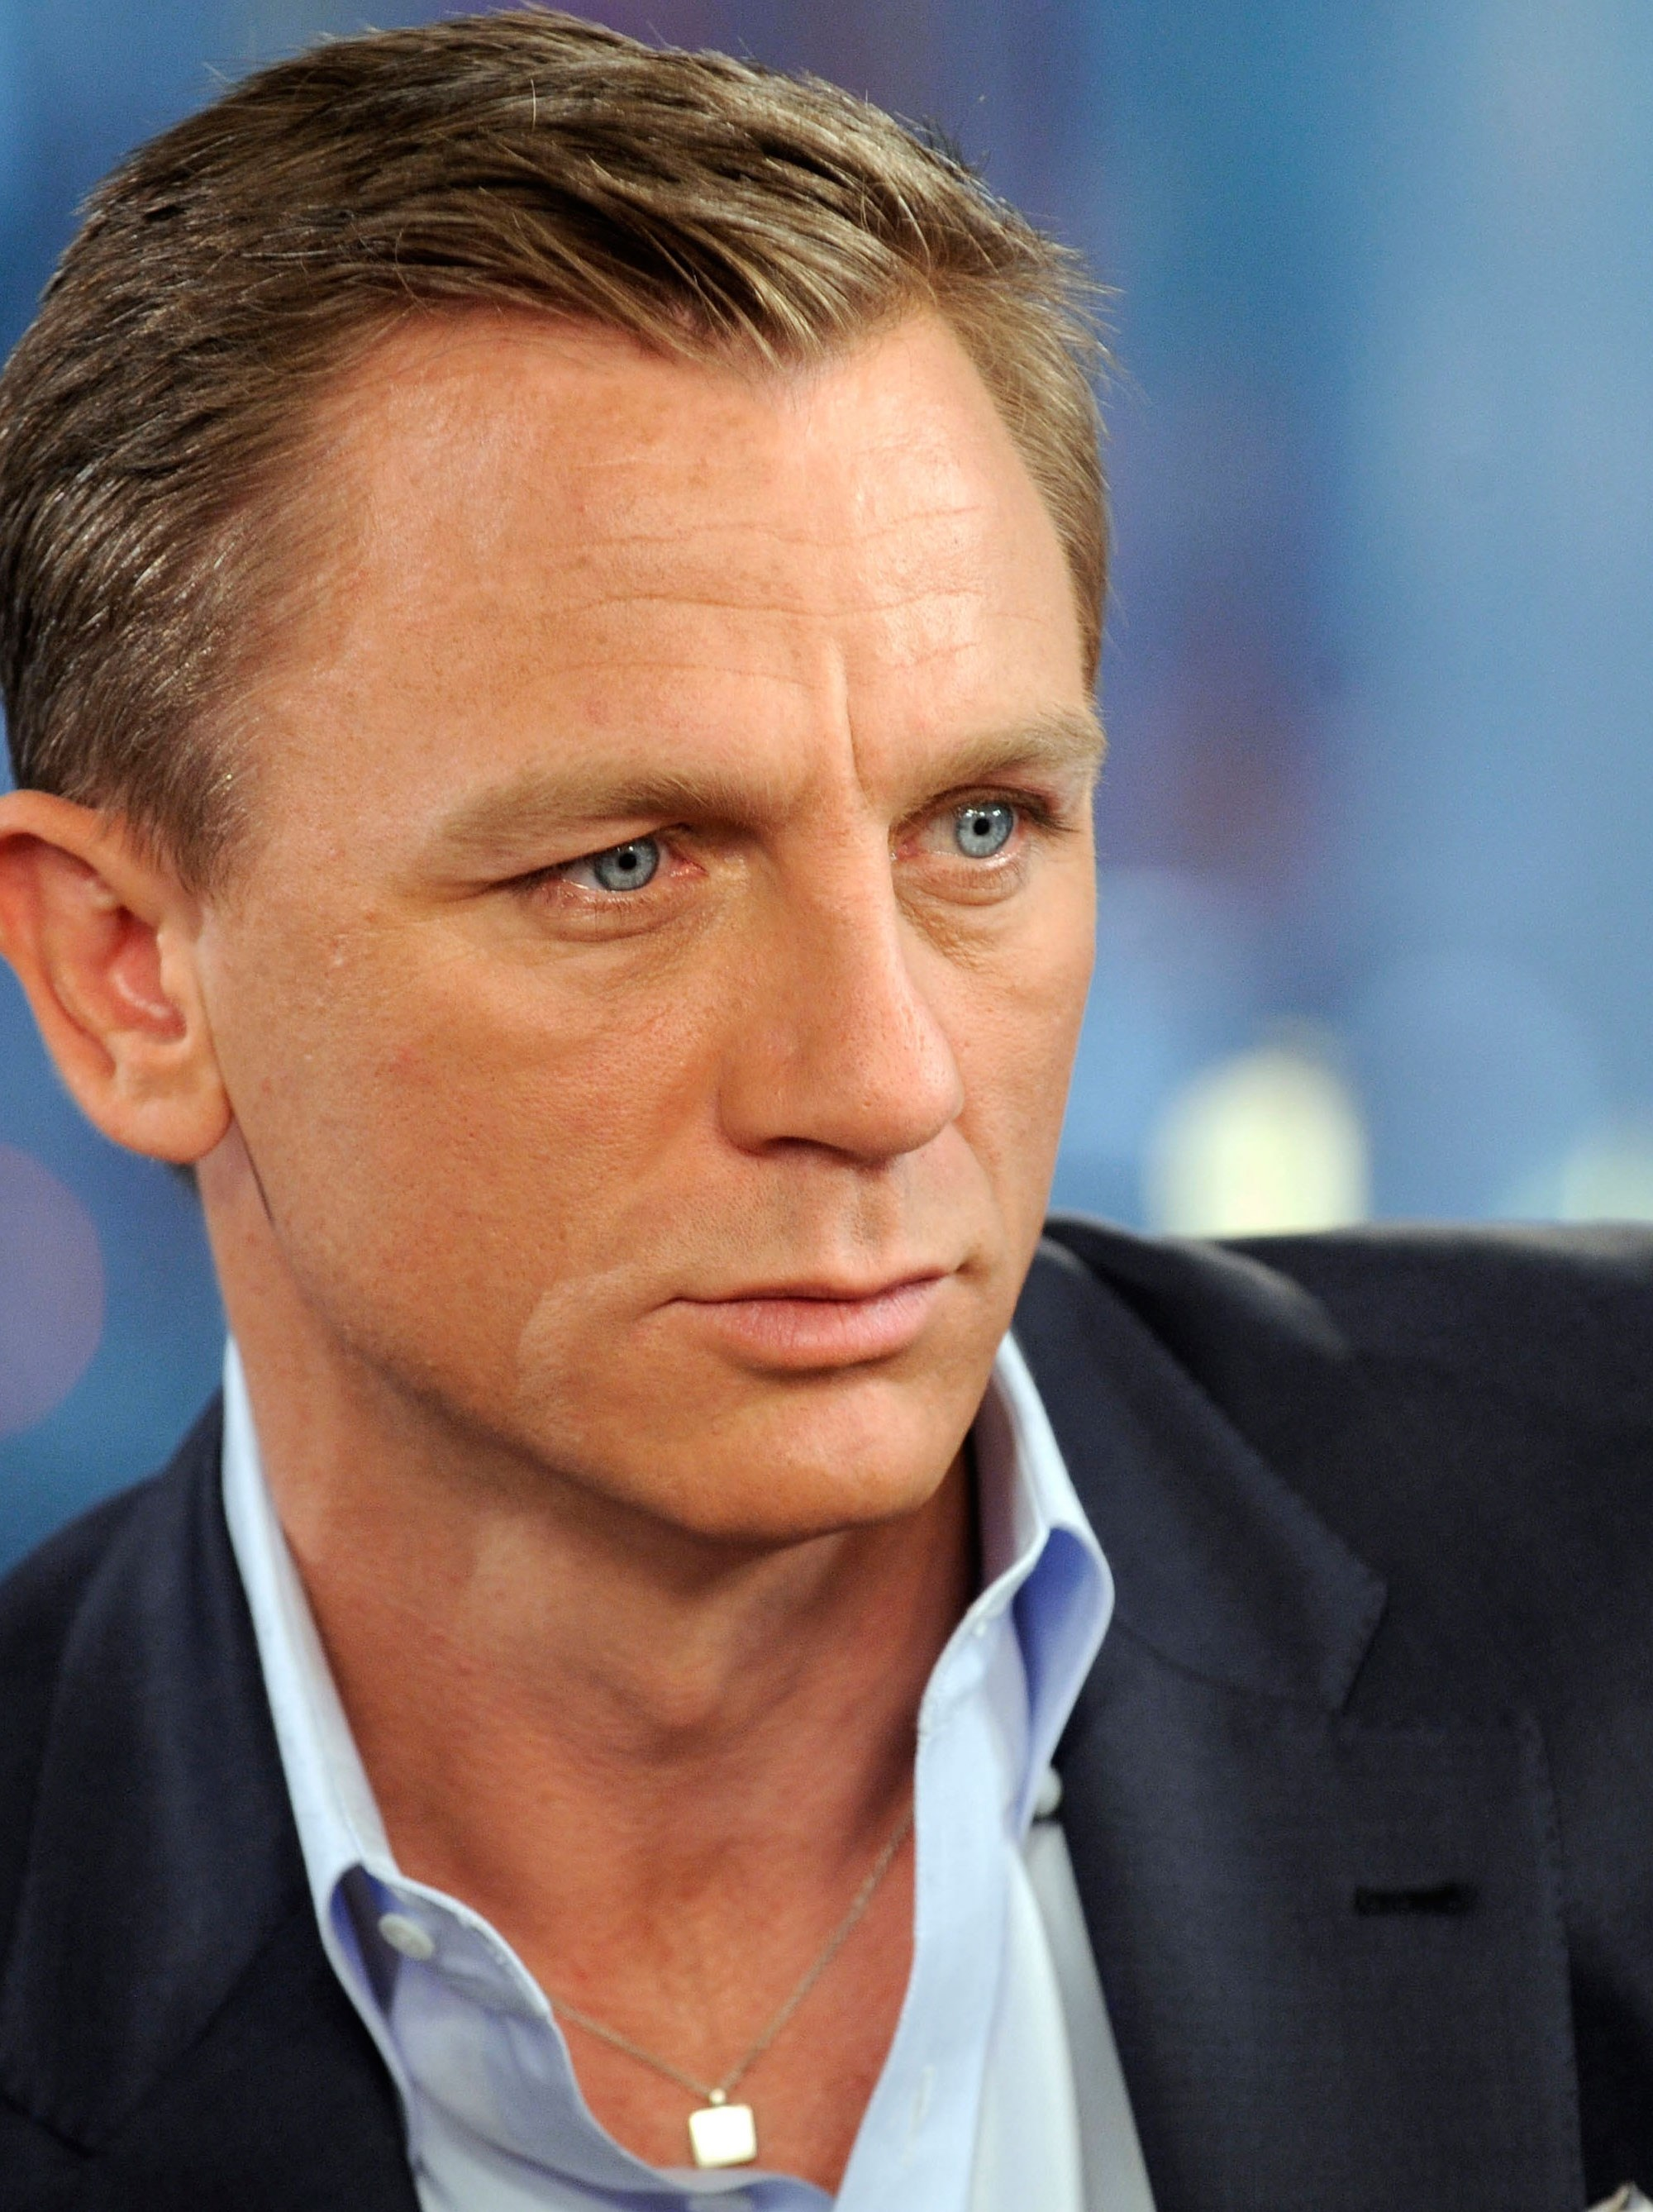 Daniel Craig | Known people - famous people news and ... Daniel Craig